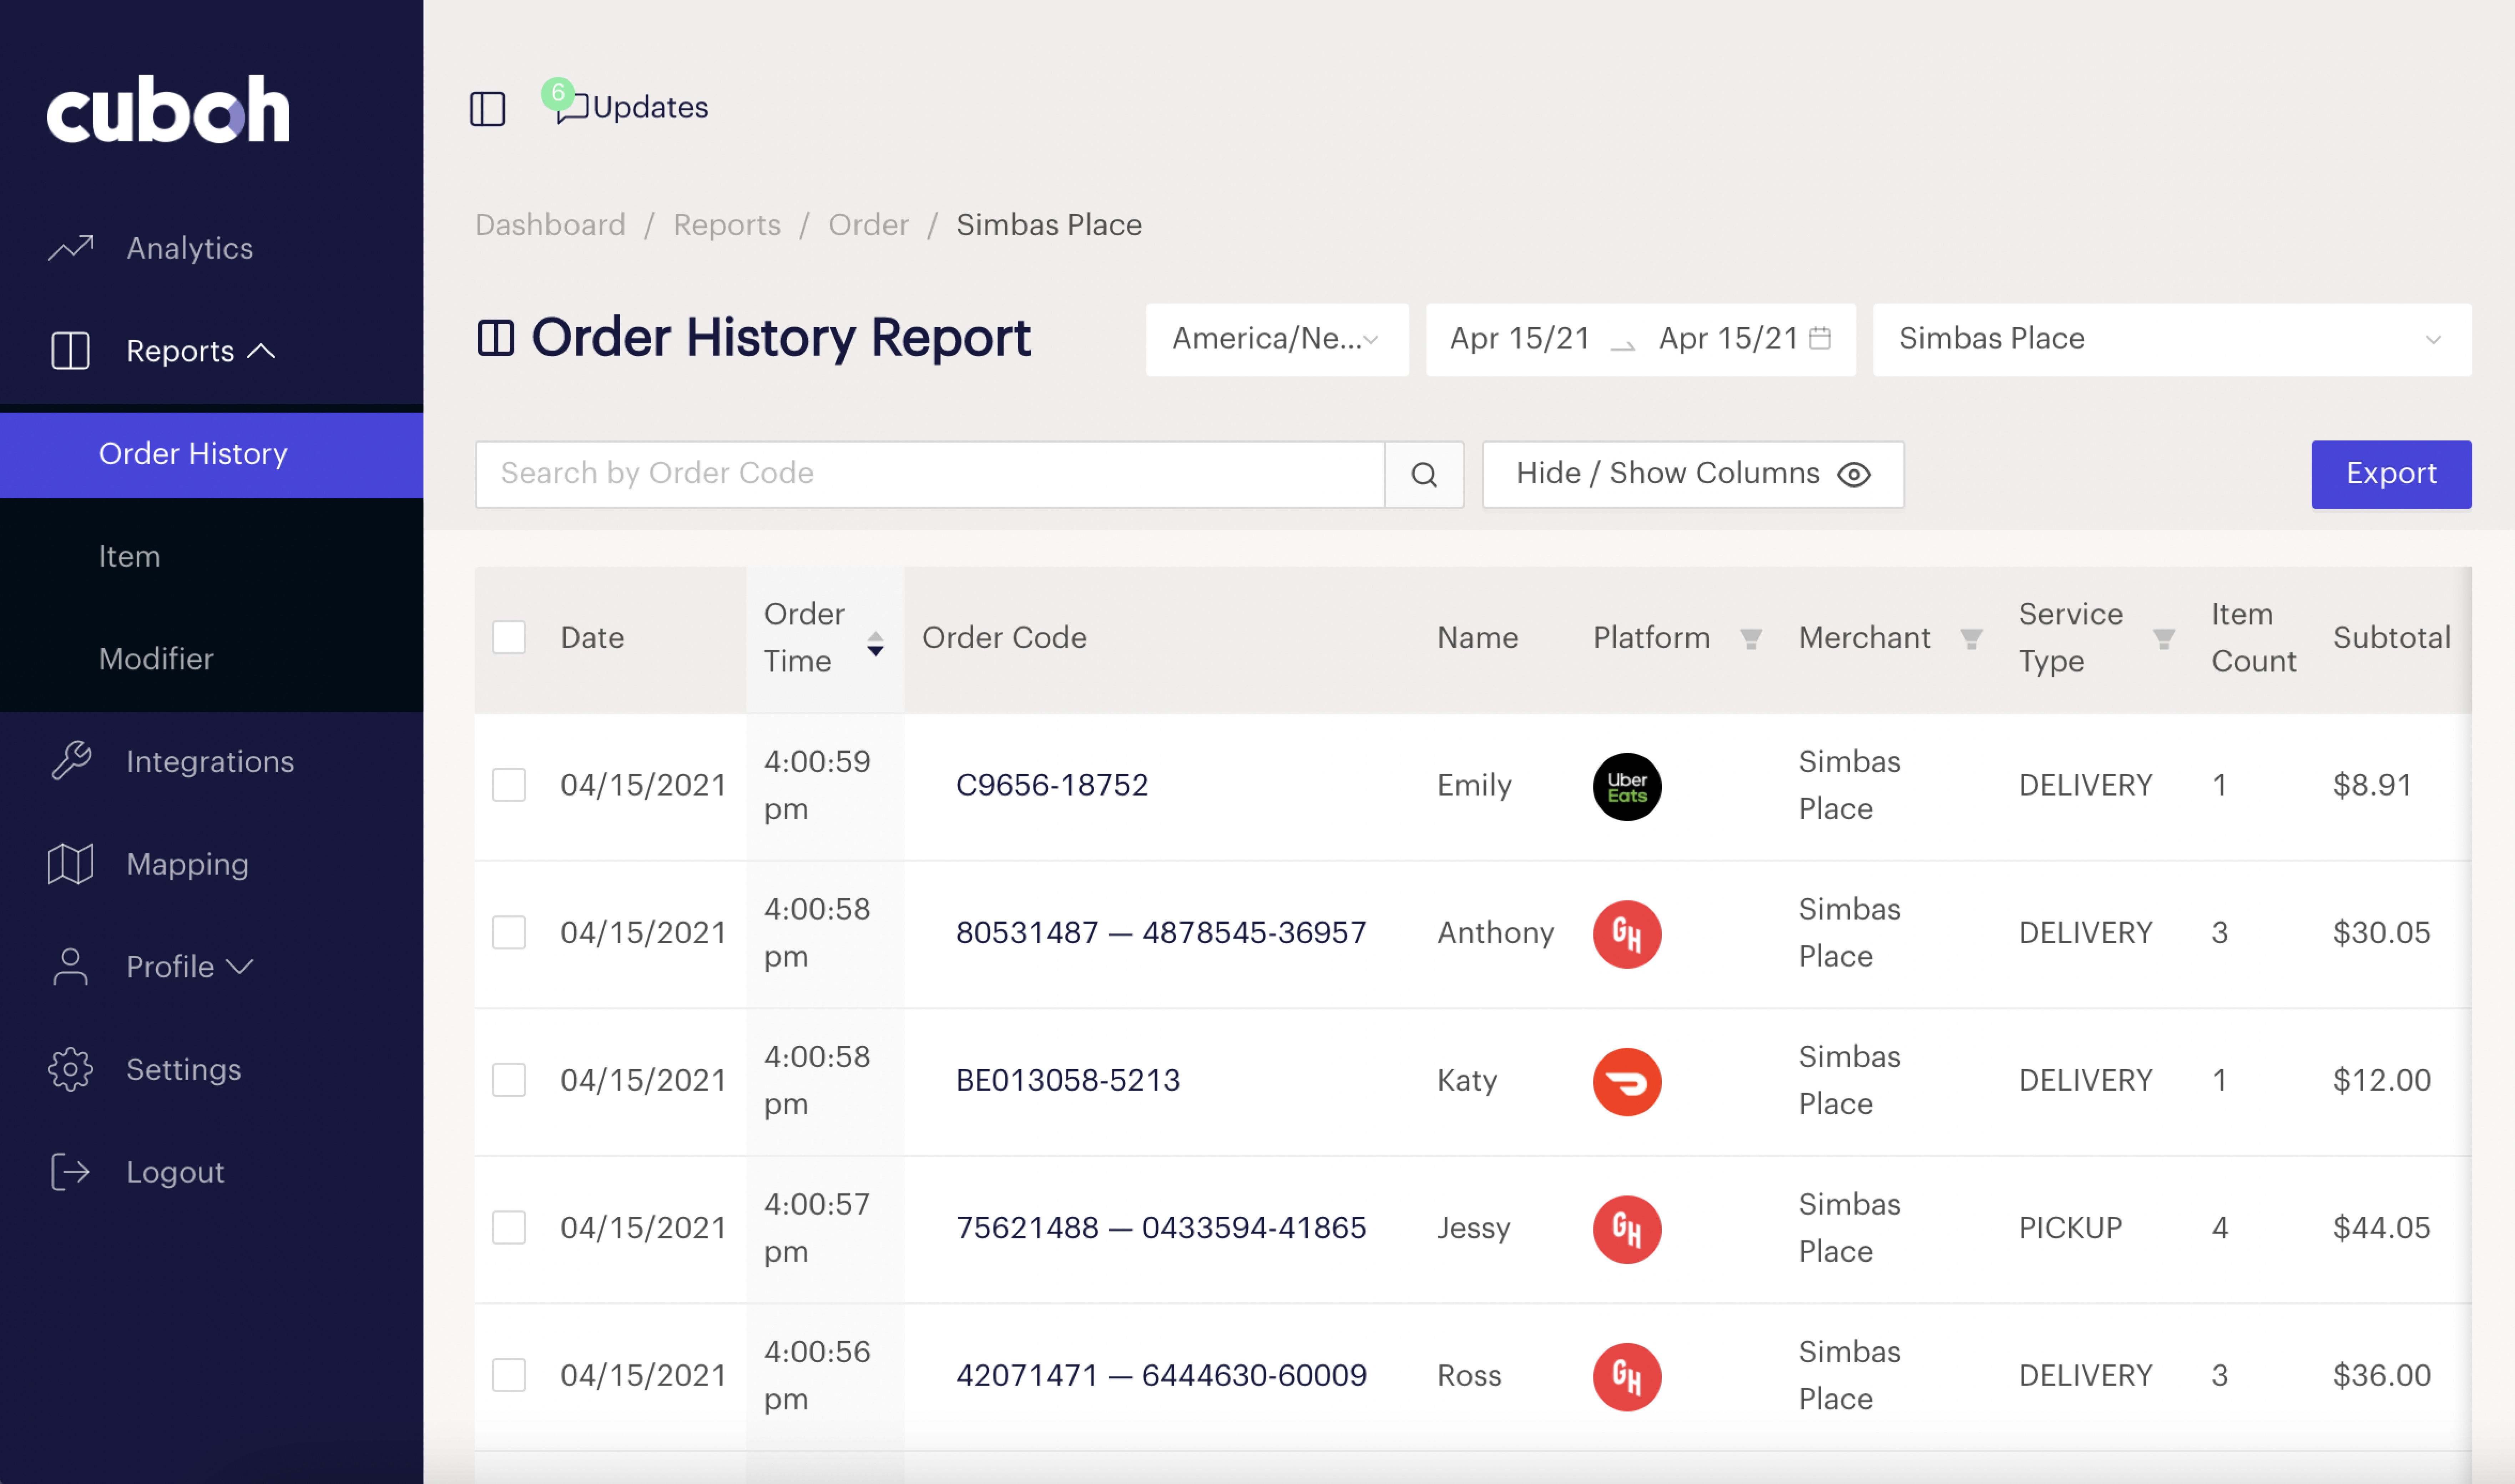 Cuboh Dashboard displaying orders from various delivery platforms.